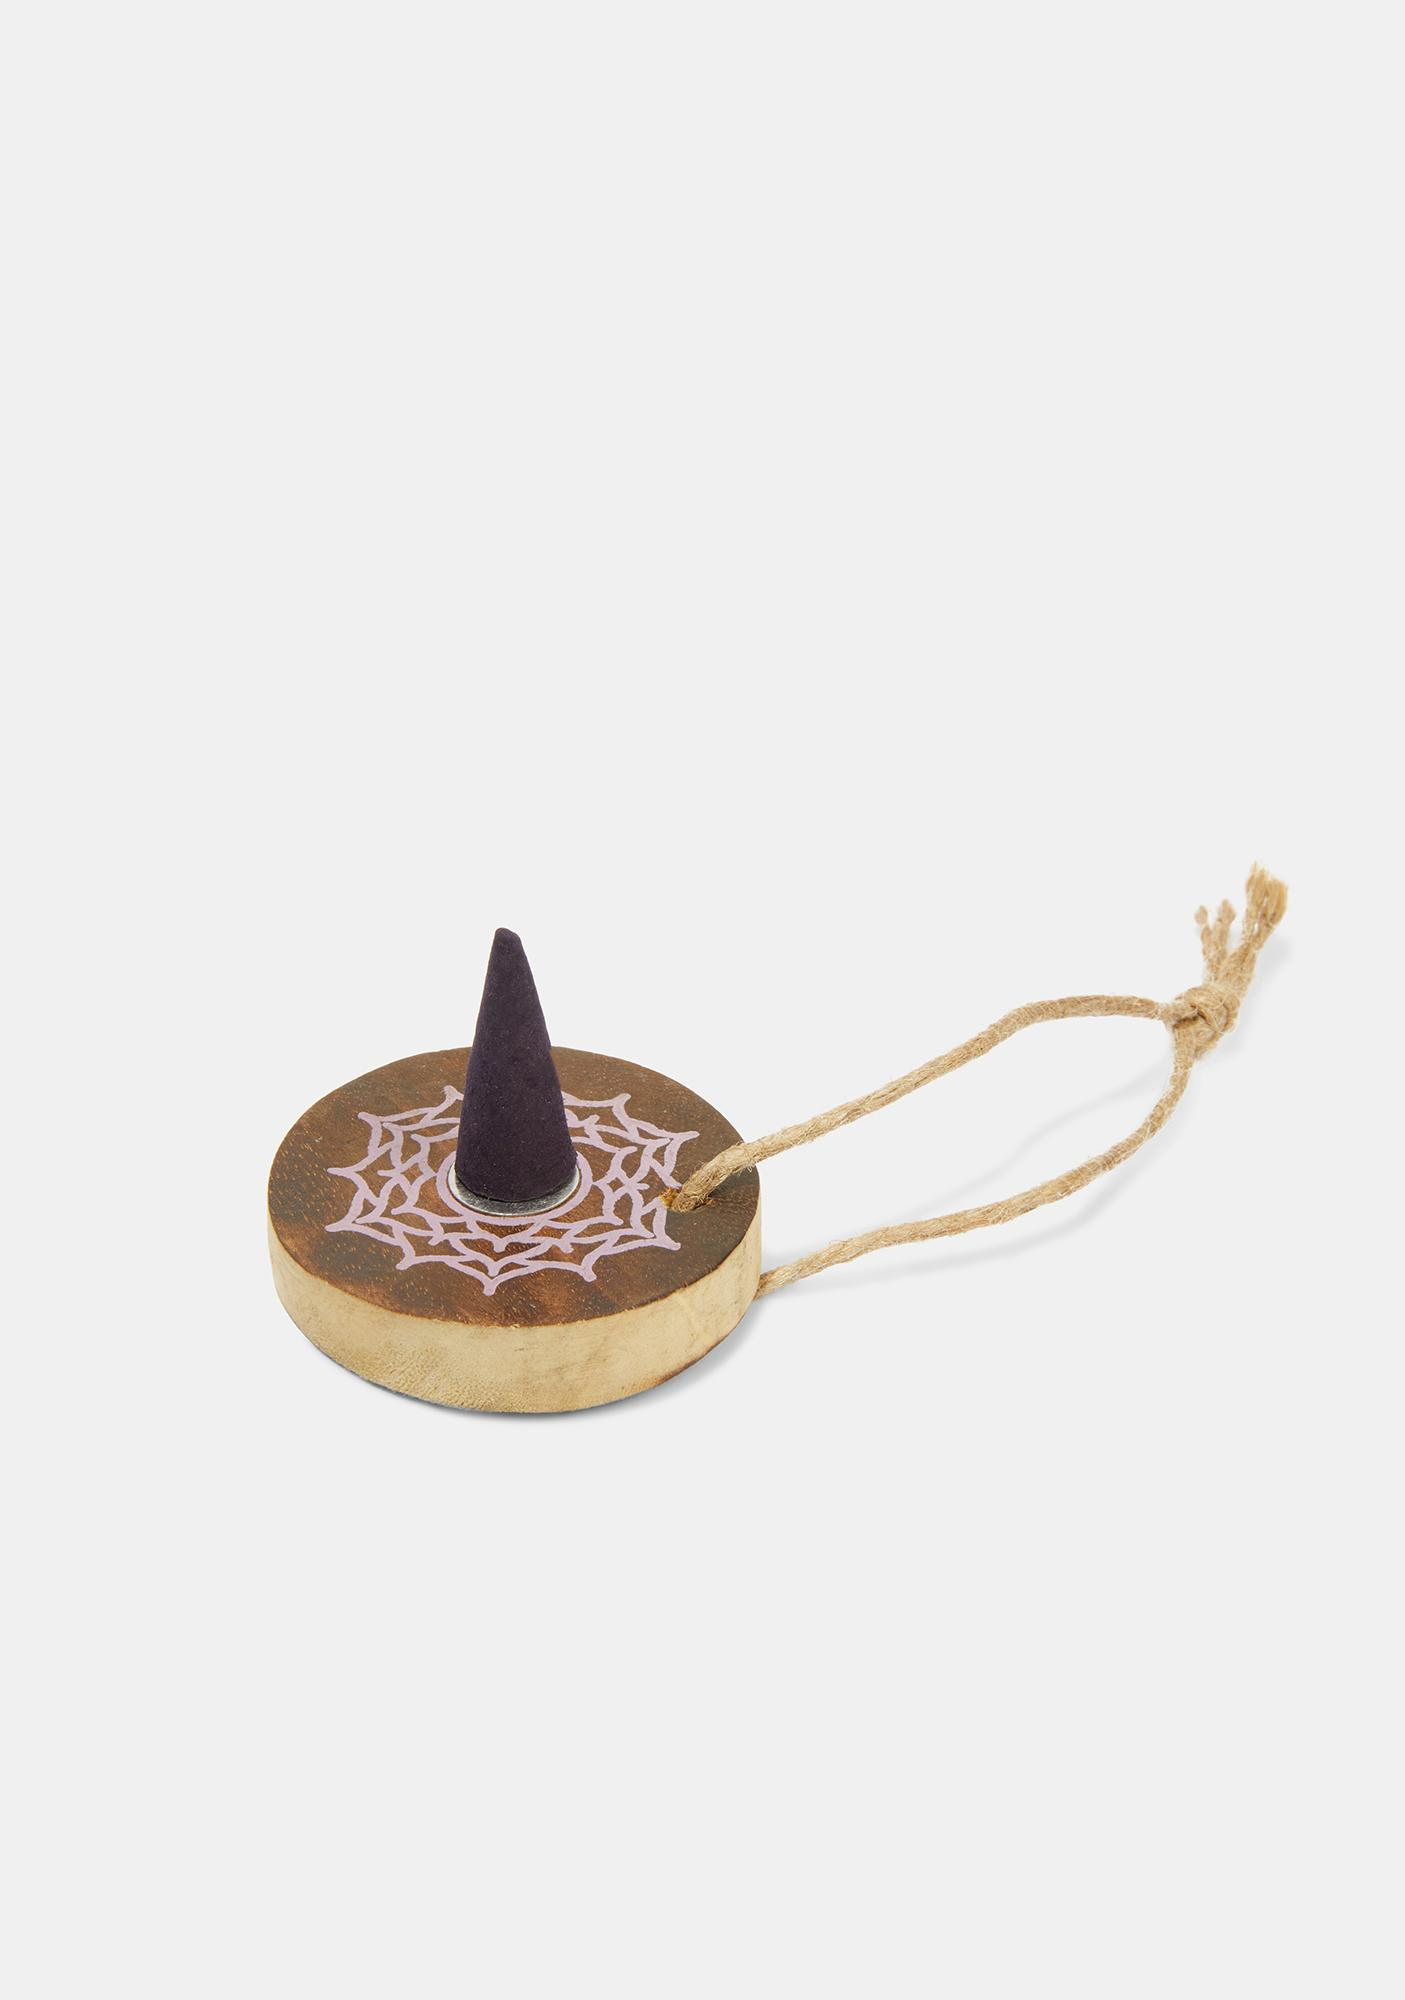 Blackberry Crown Chakra Incense Cones And Holder